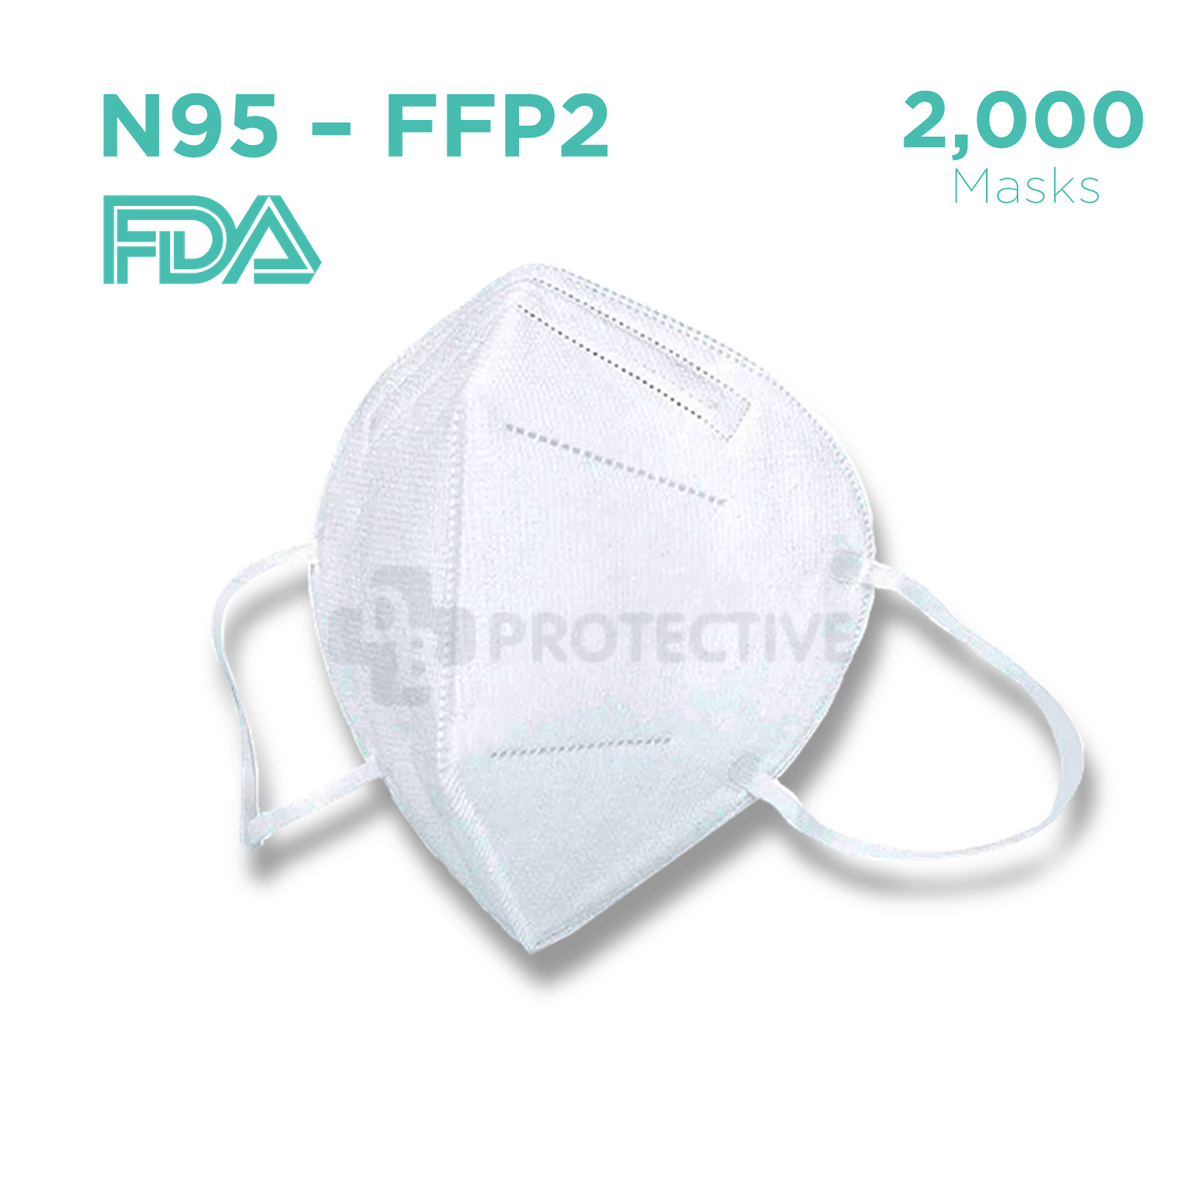 N95 FFP2 Medical Protective Face Mask - Pack of 2,000